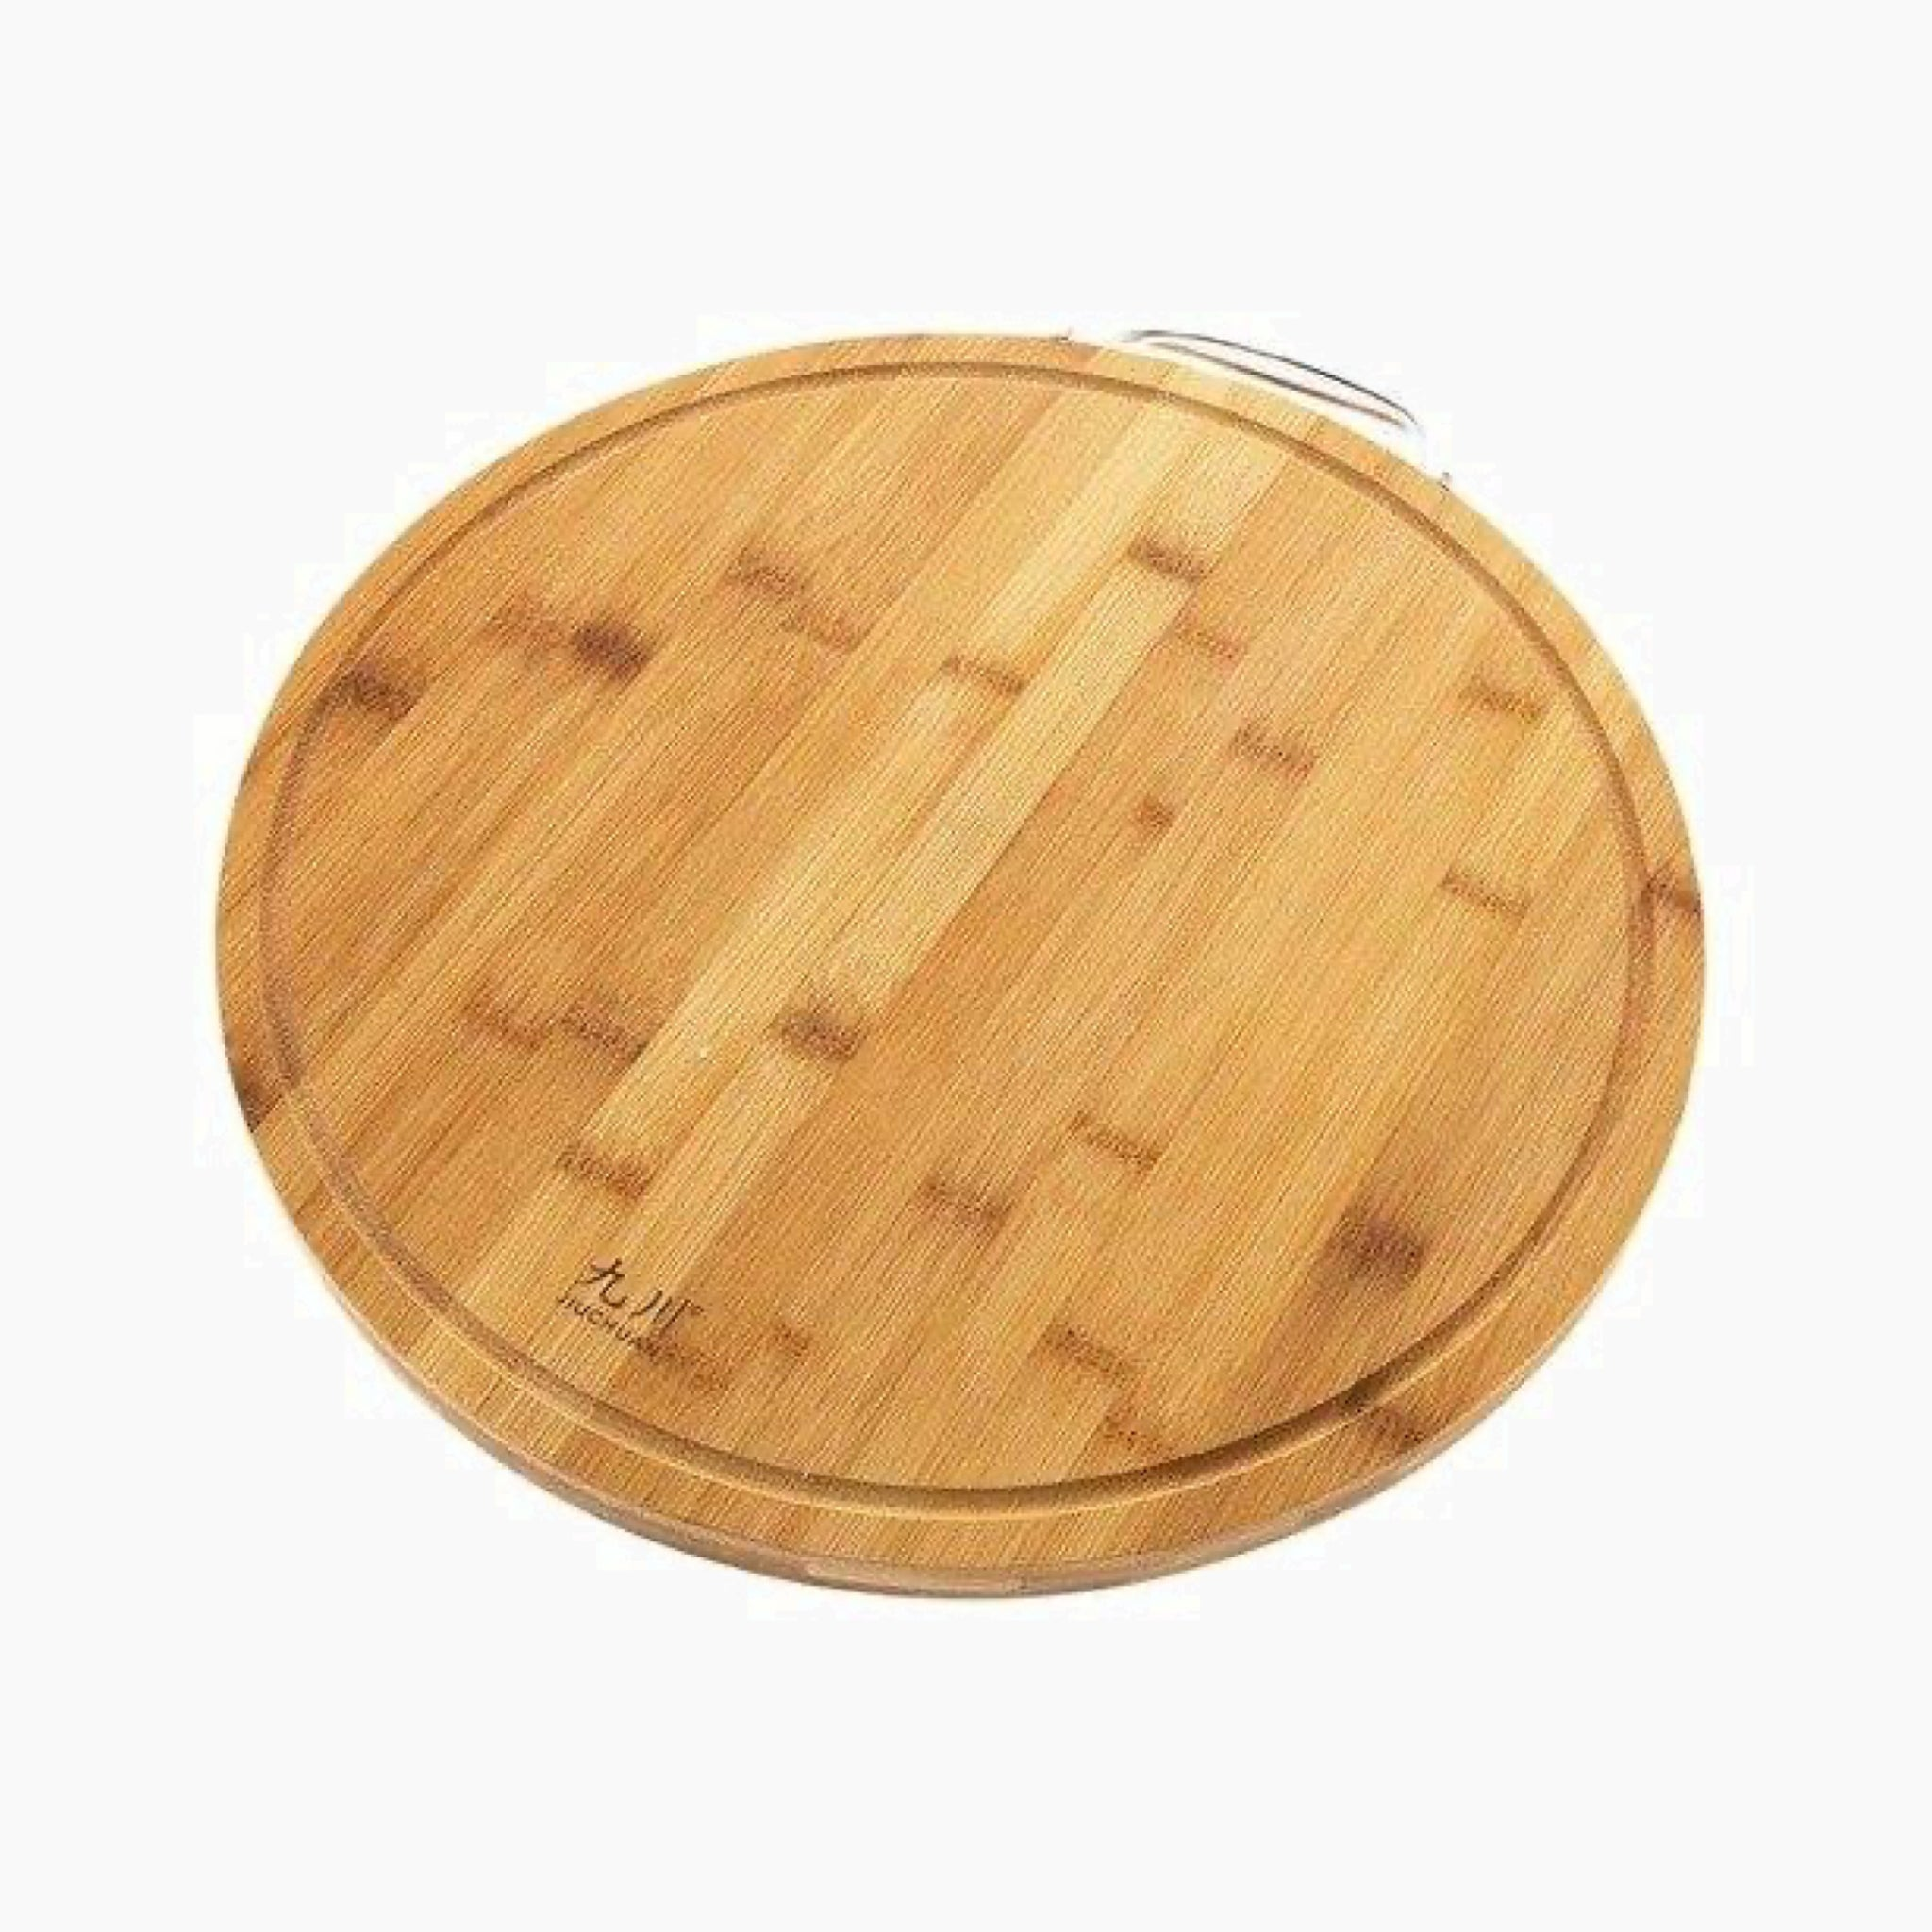 Large Round Wooden Chopping Block Thick Bamboo Rectangle Hangable Cutting Board Kitchen Accessory Trend